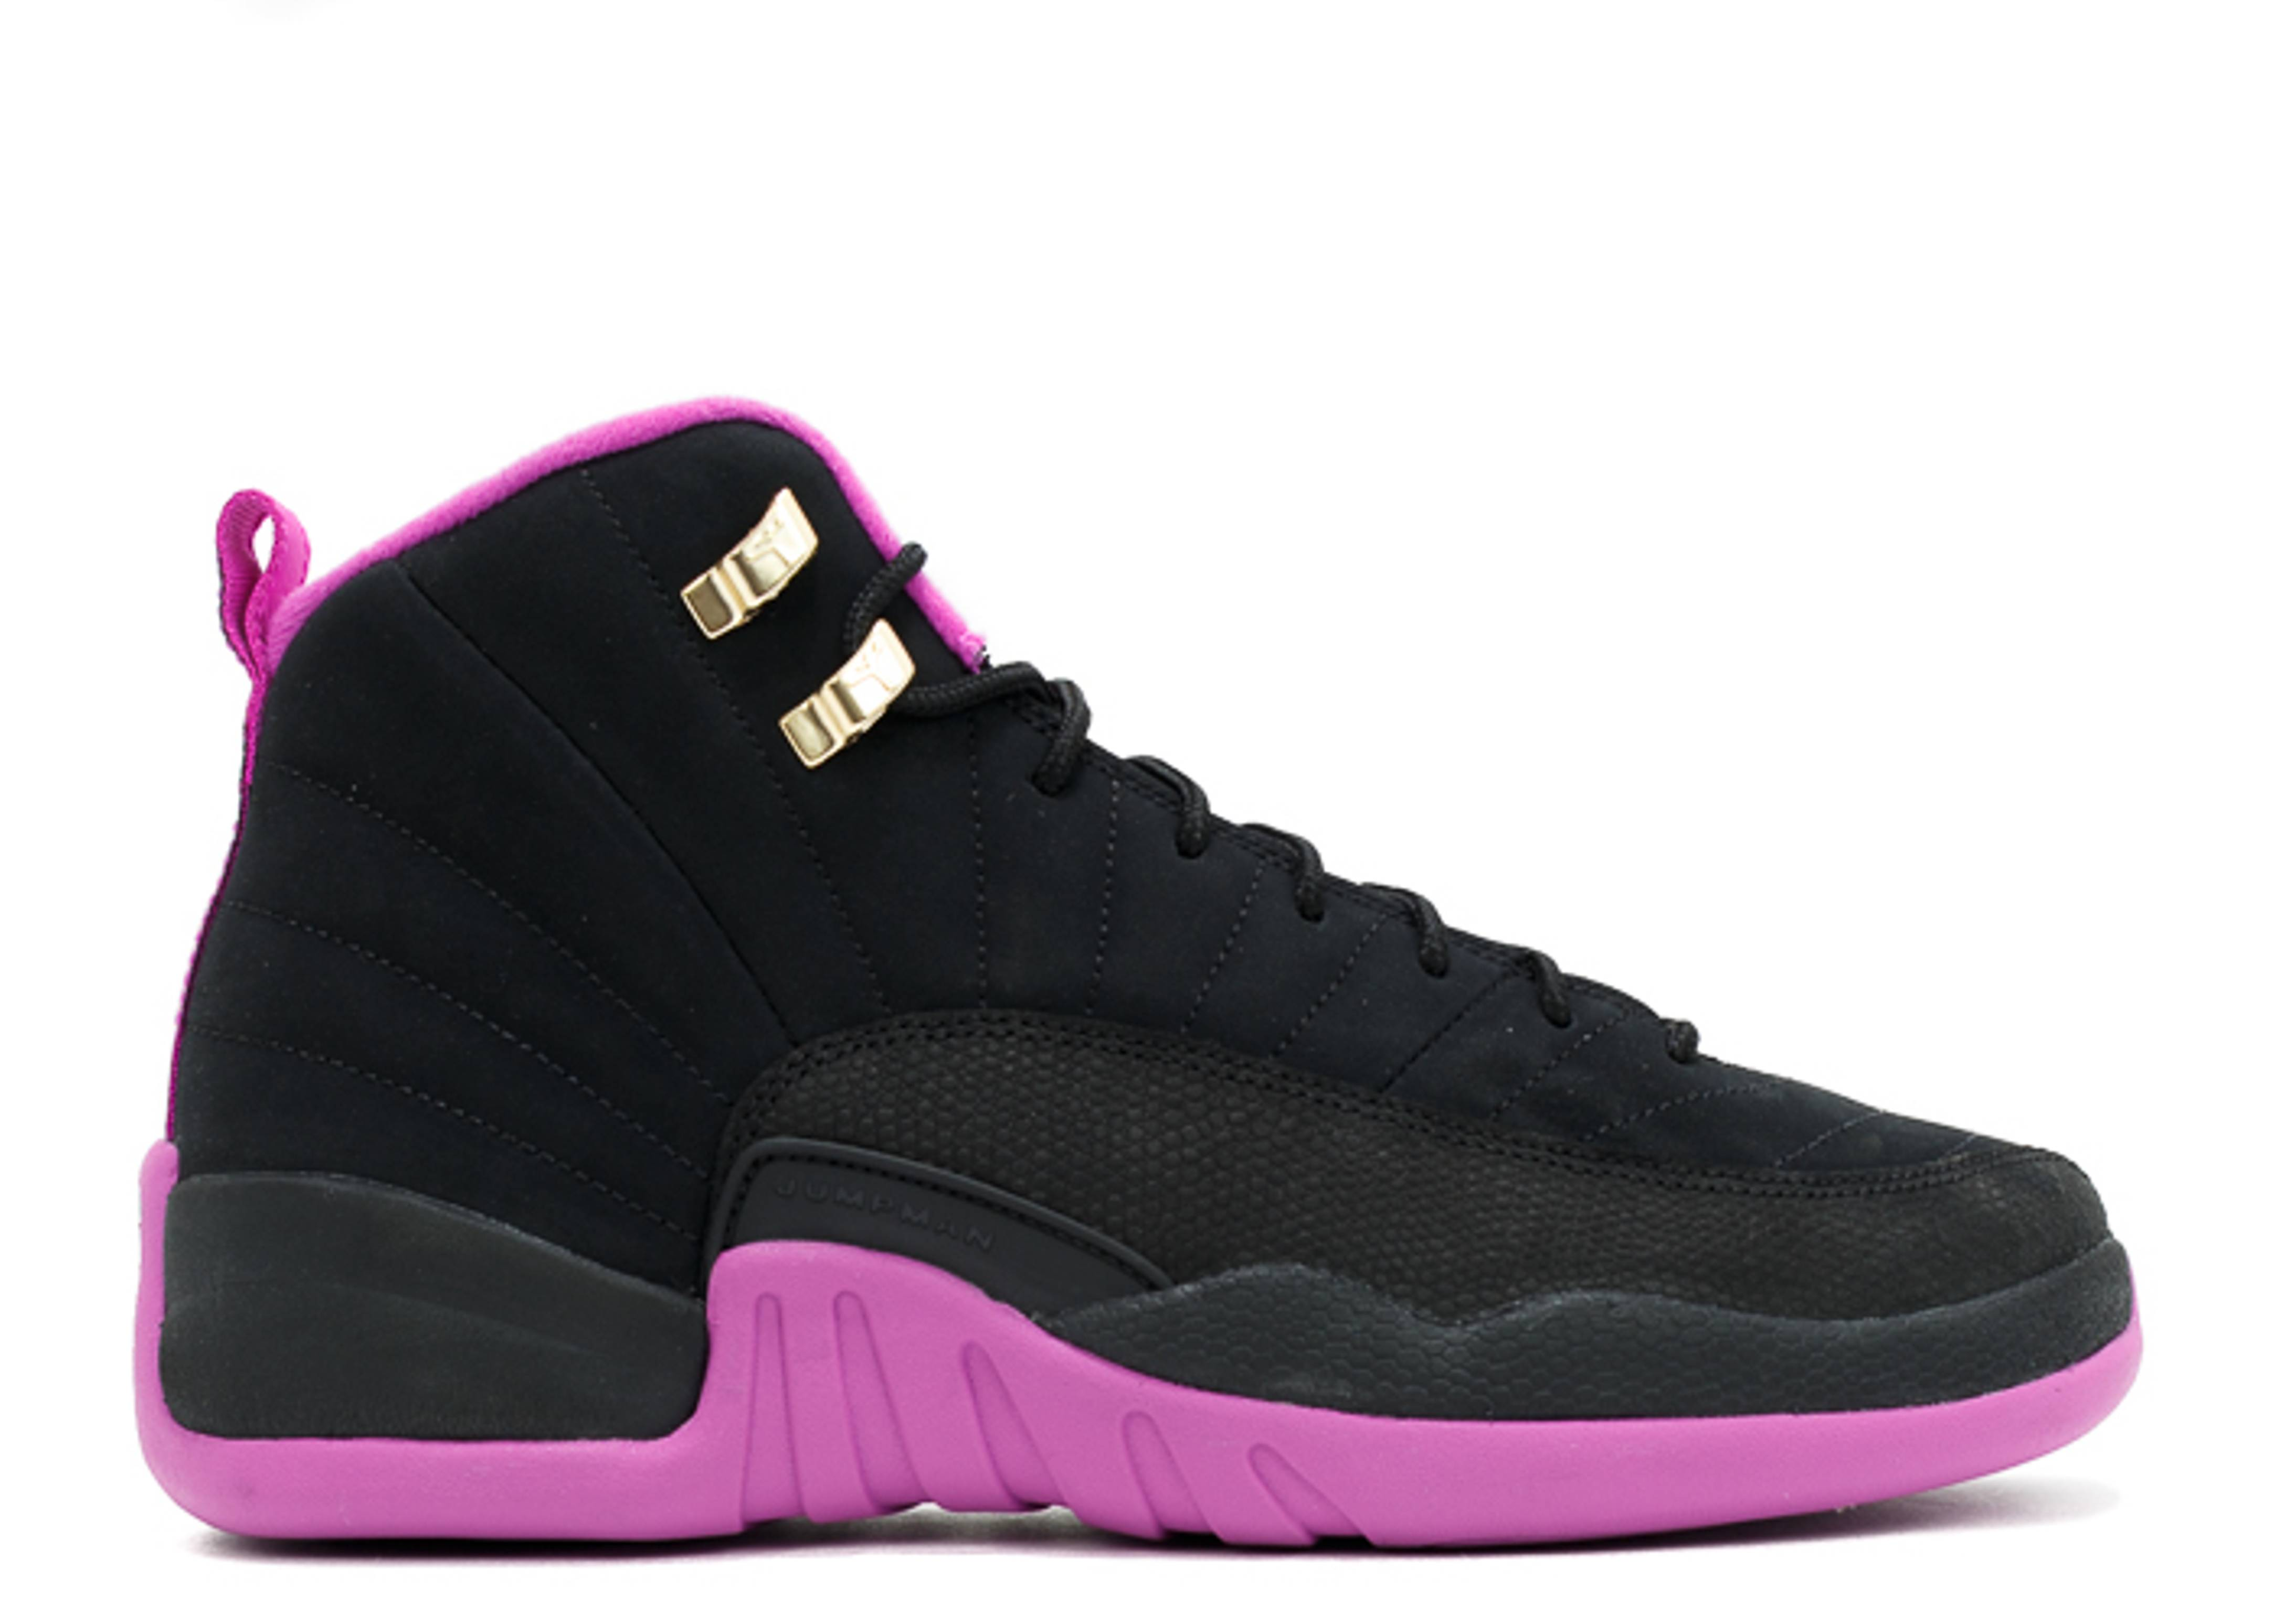 quality design 8d1d6 8e6ad air jordan 12 retro gg (gs)